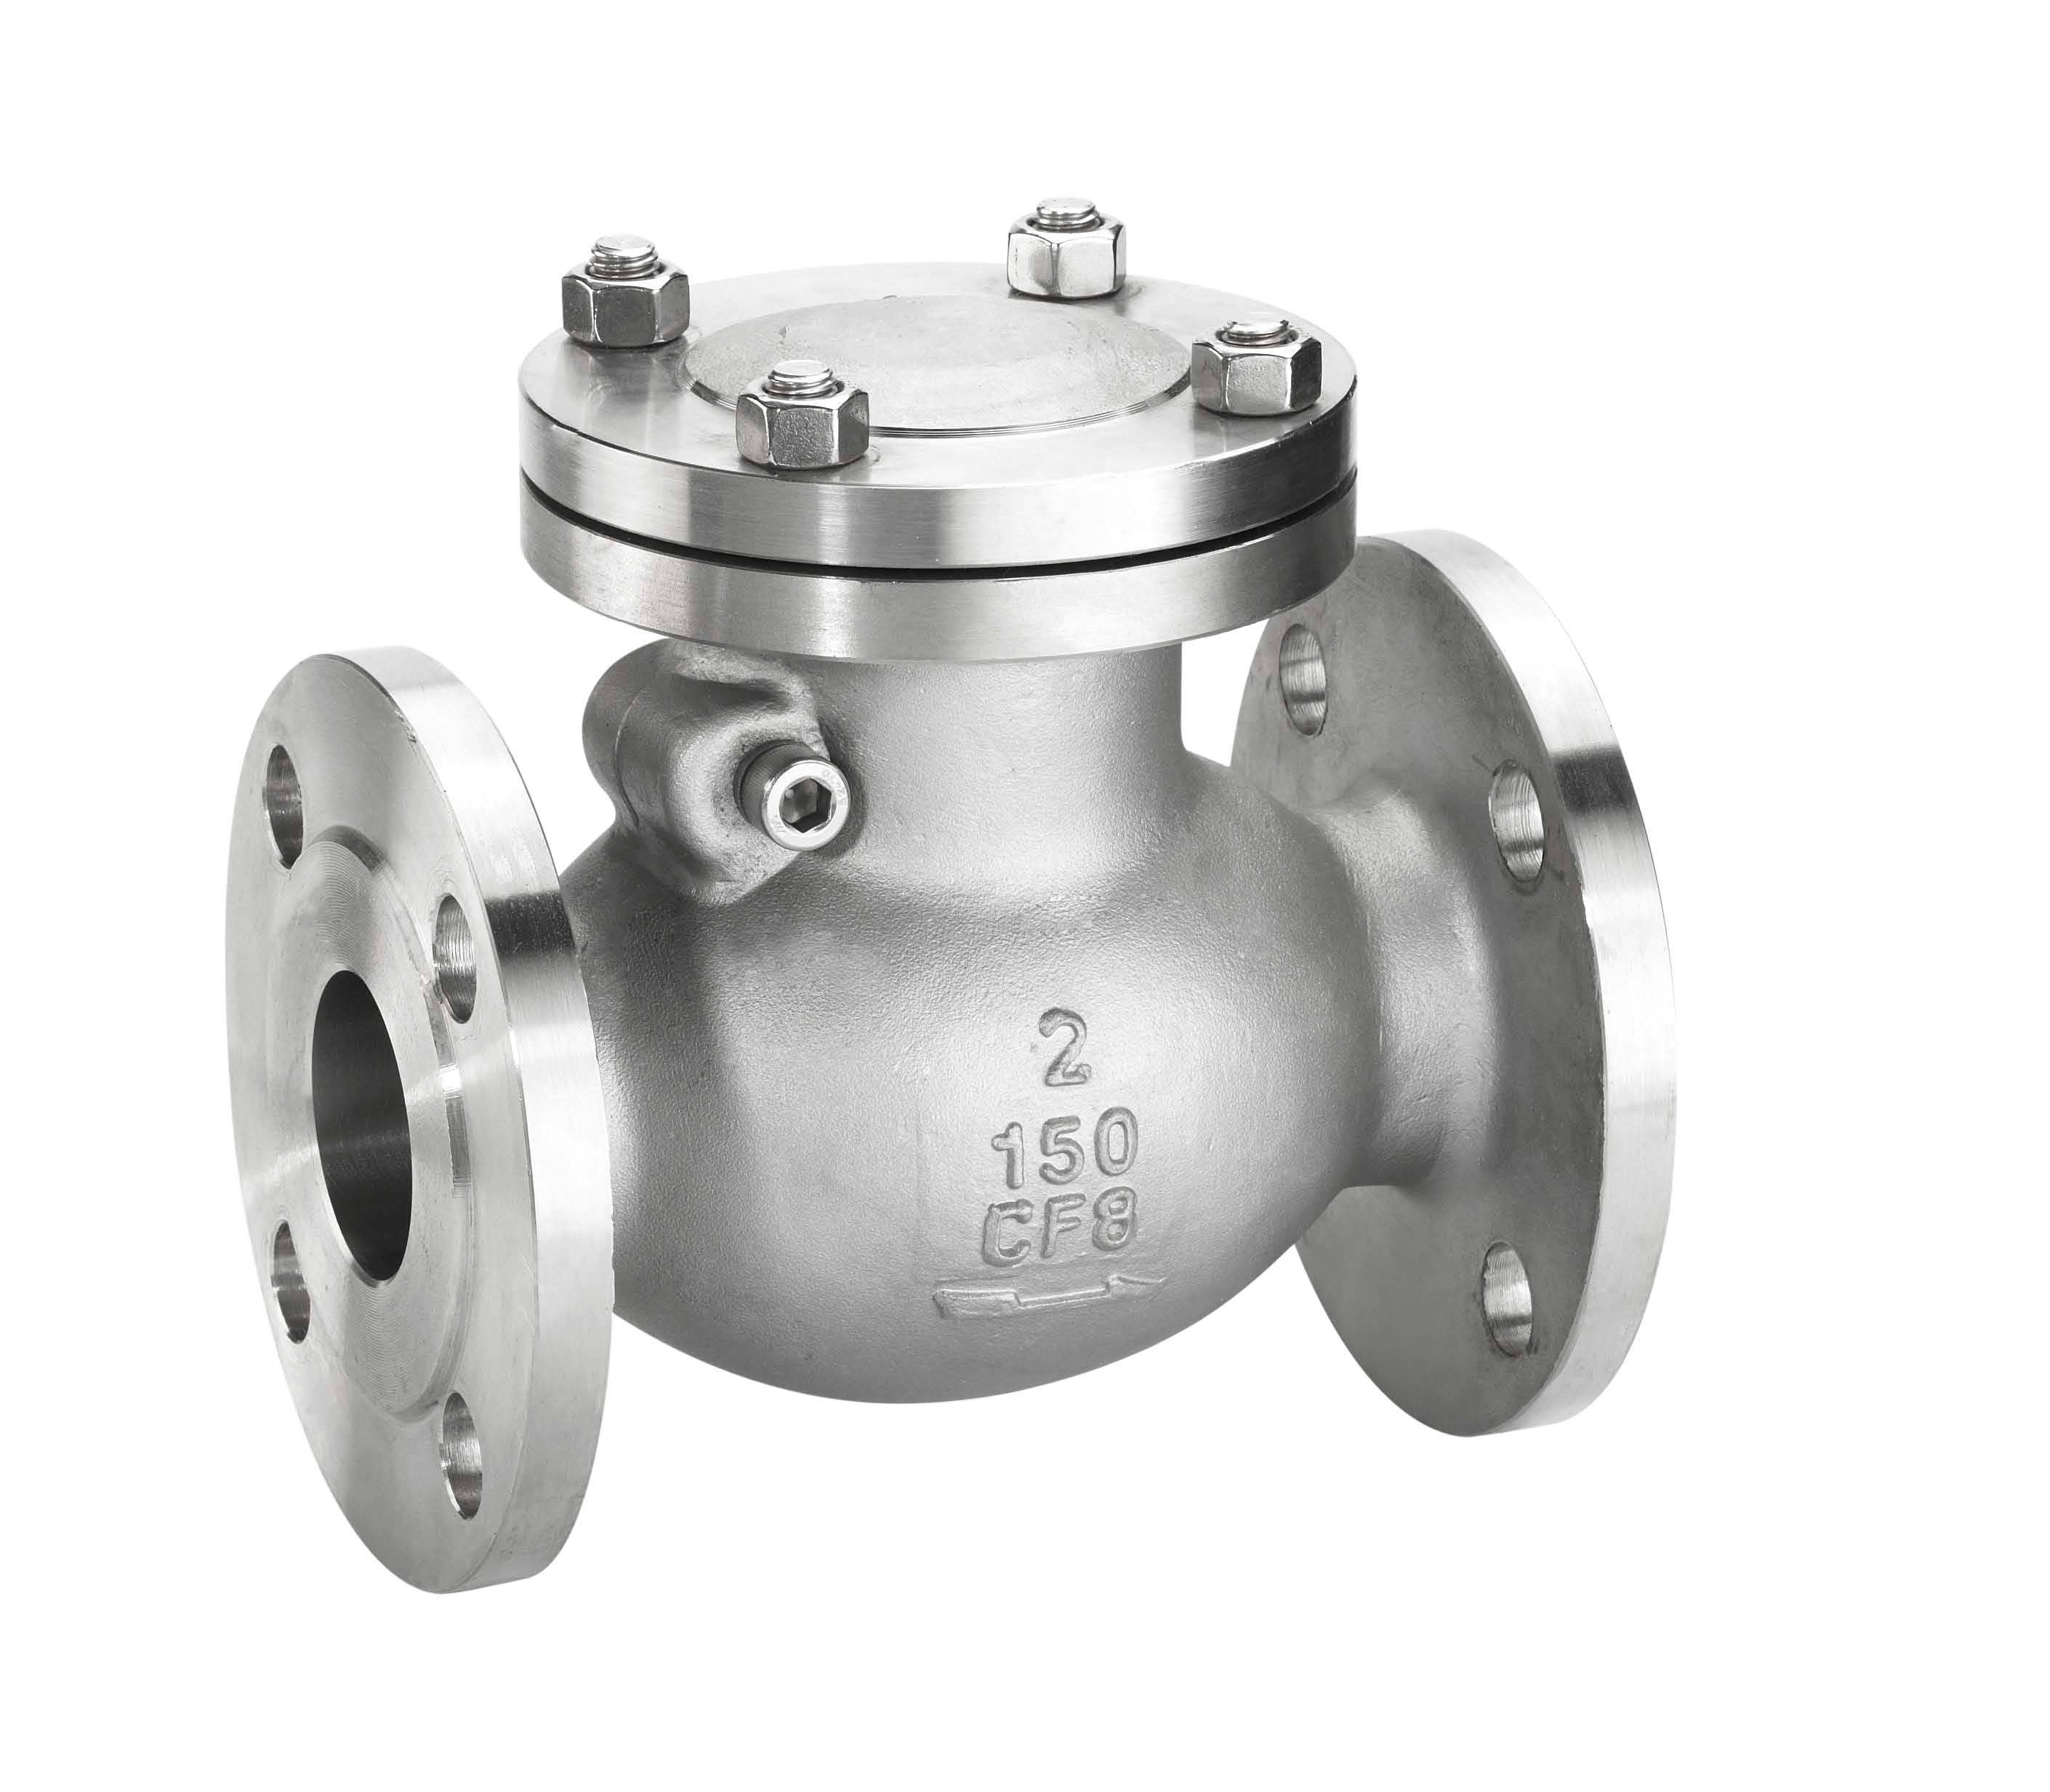 The swing flange of type check valve